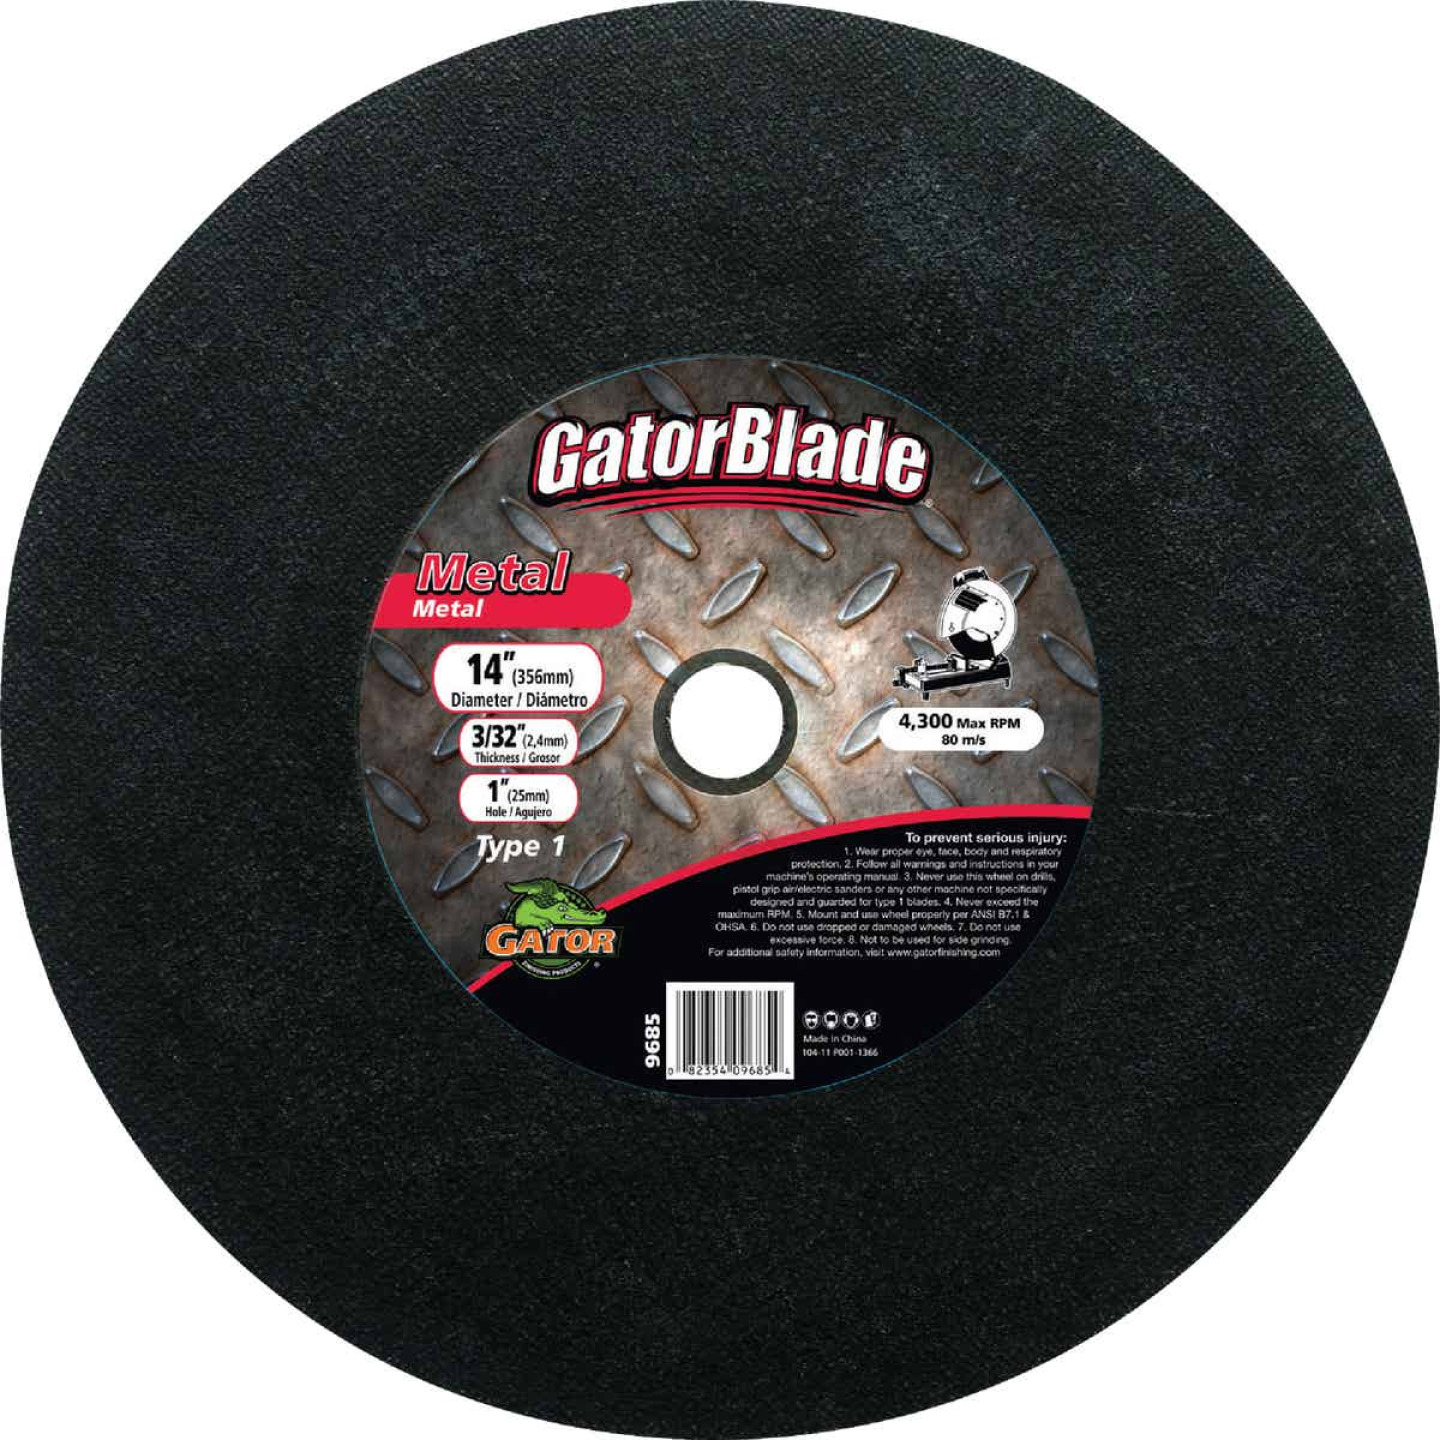 Gator Blade Type 1 14 In. x 3/32 In. x 1 In. Metal Cut-Off Wheel Image 1